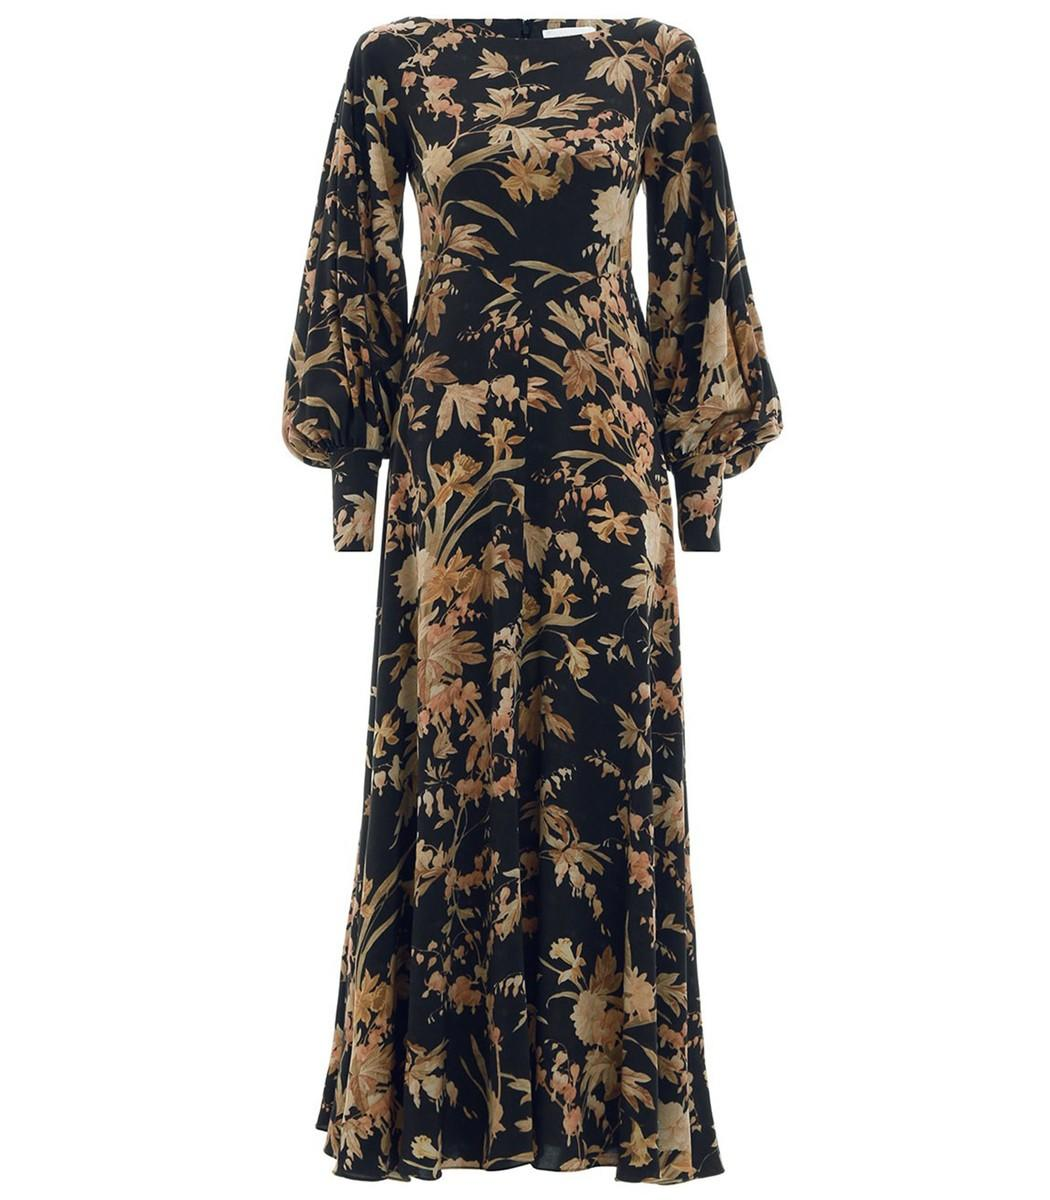 95a7712006525 Unbridled Basque Dress In Black Jonquil Floral in Multi